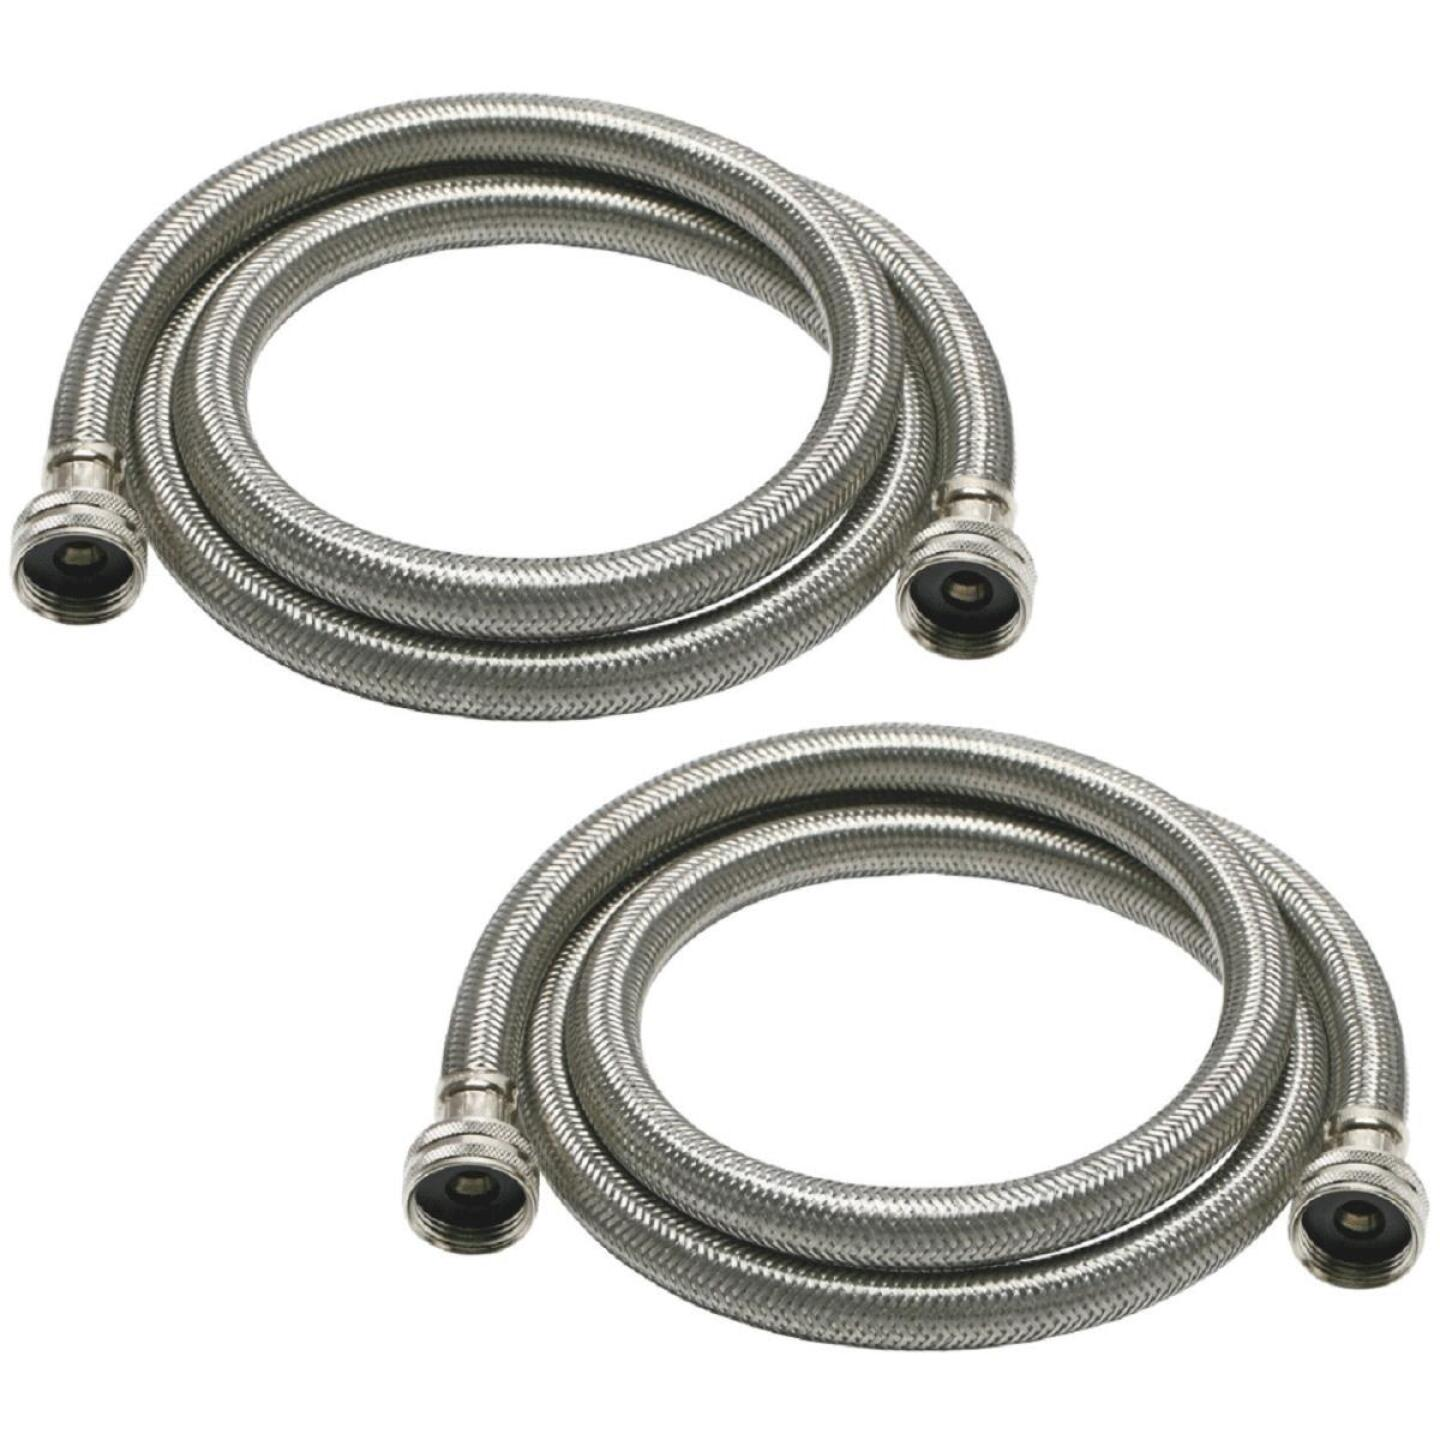 Fluidmaster 3/4 x 3/4 In. Hose Fitting x 60 In. L Braided Stainless Steel High Efficiency Washing Machine Hose(2-Pack) Image 2